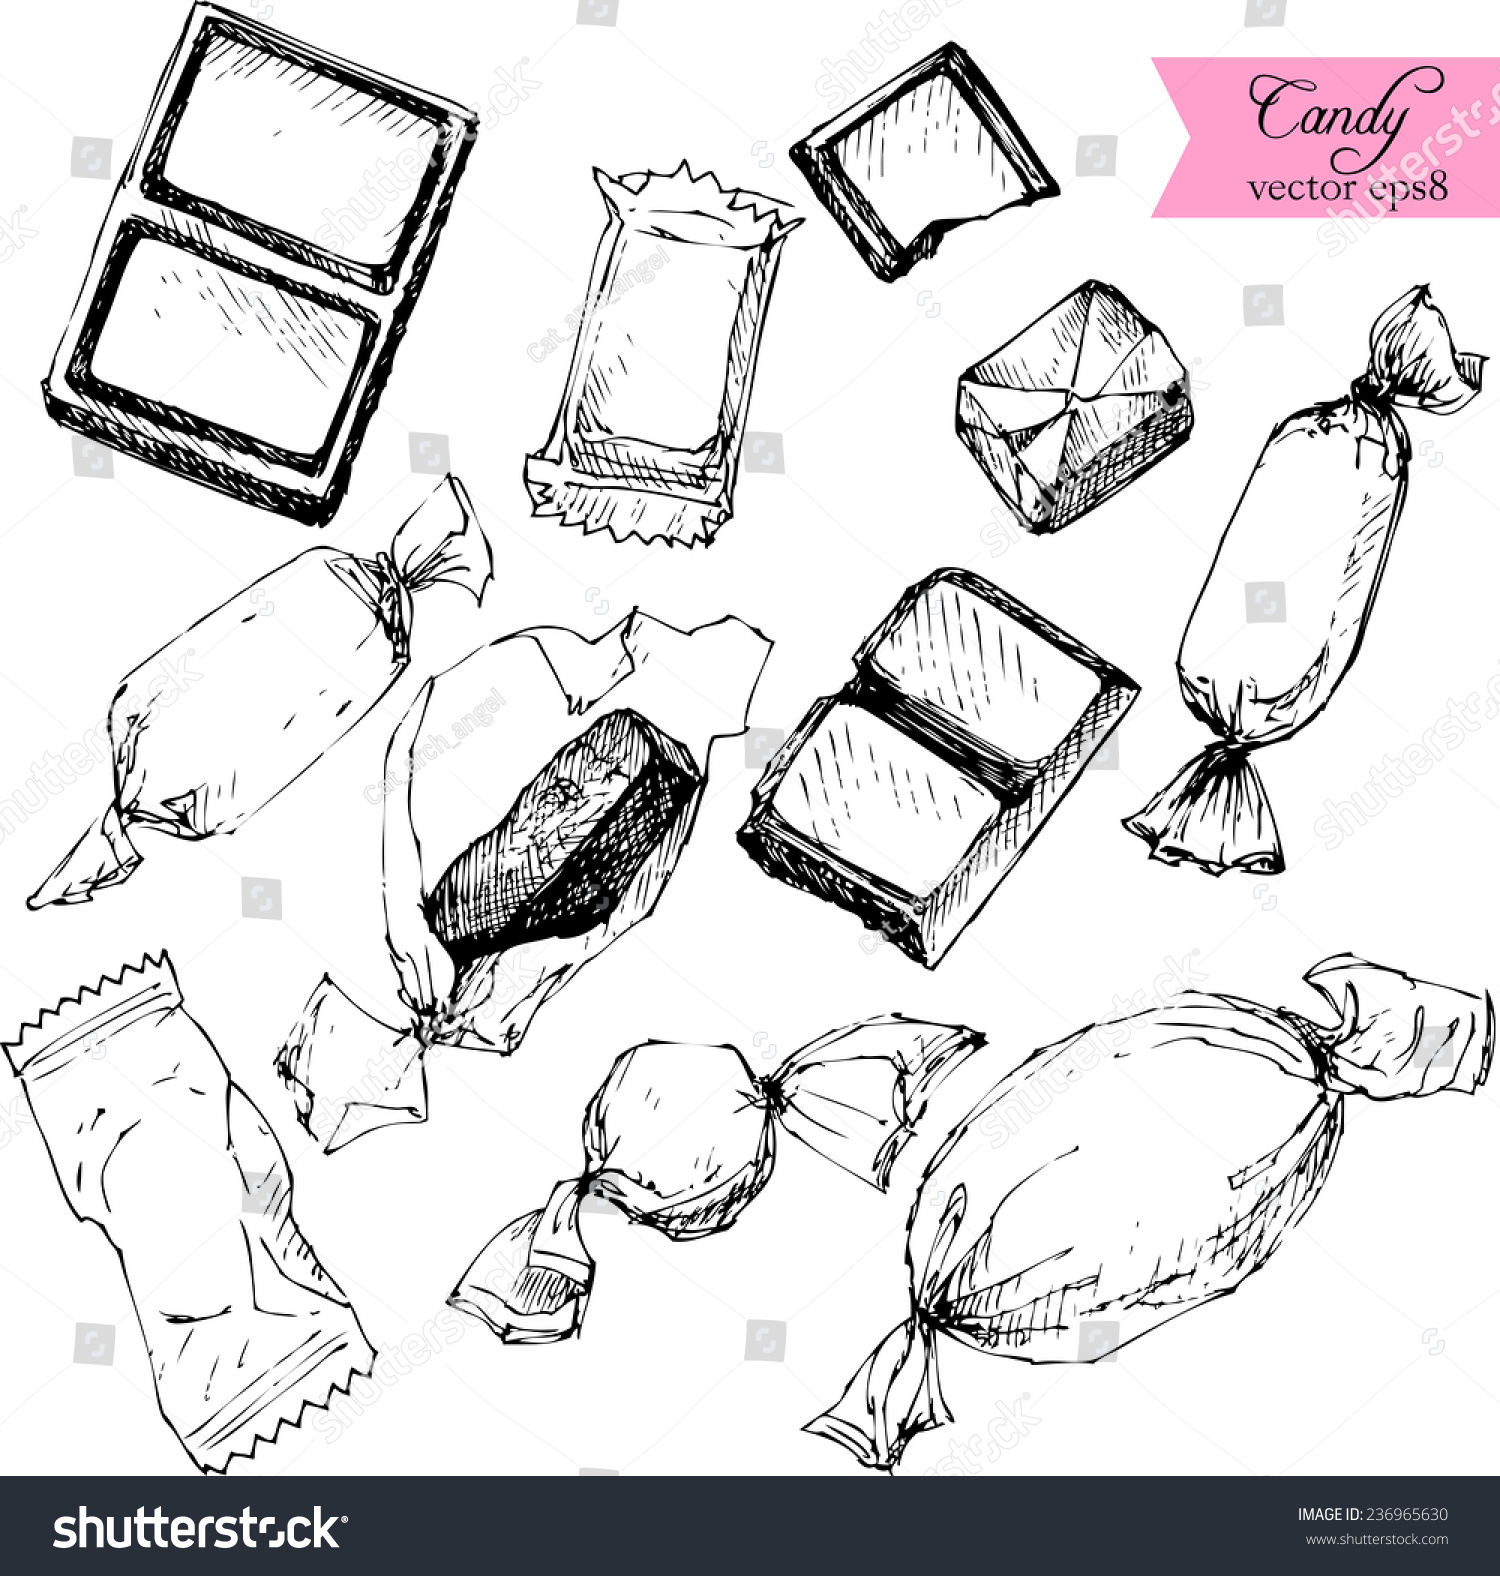 Drawing Lines Between Html Elements : Set line drawing candy sketch white stock vector